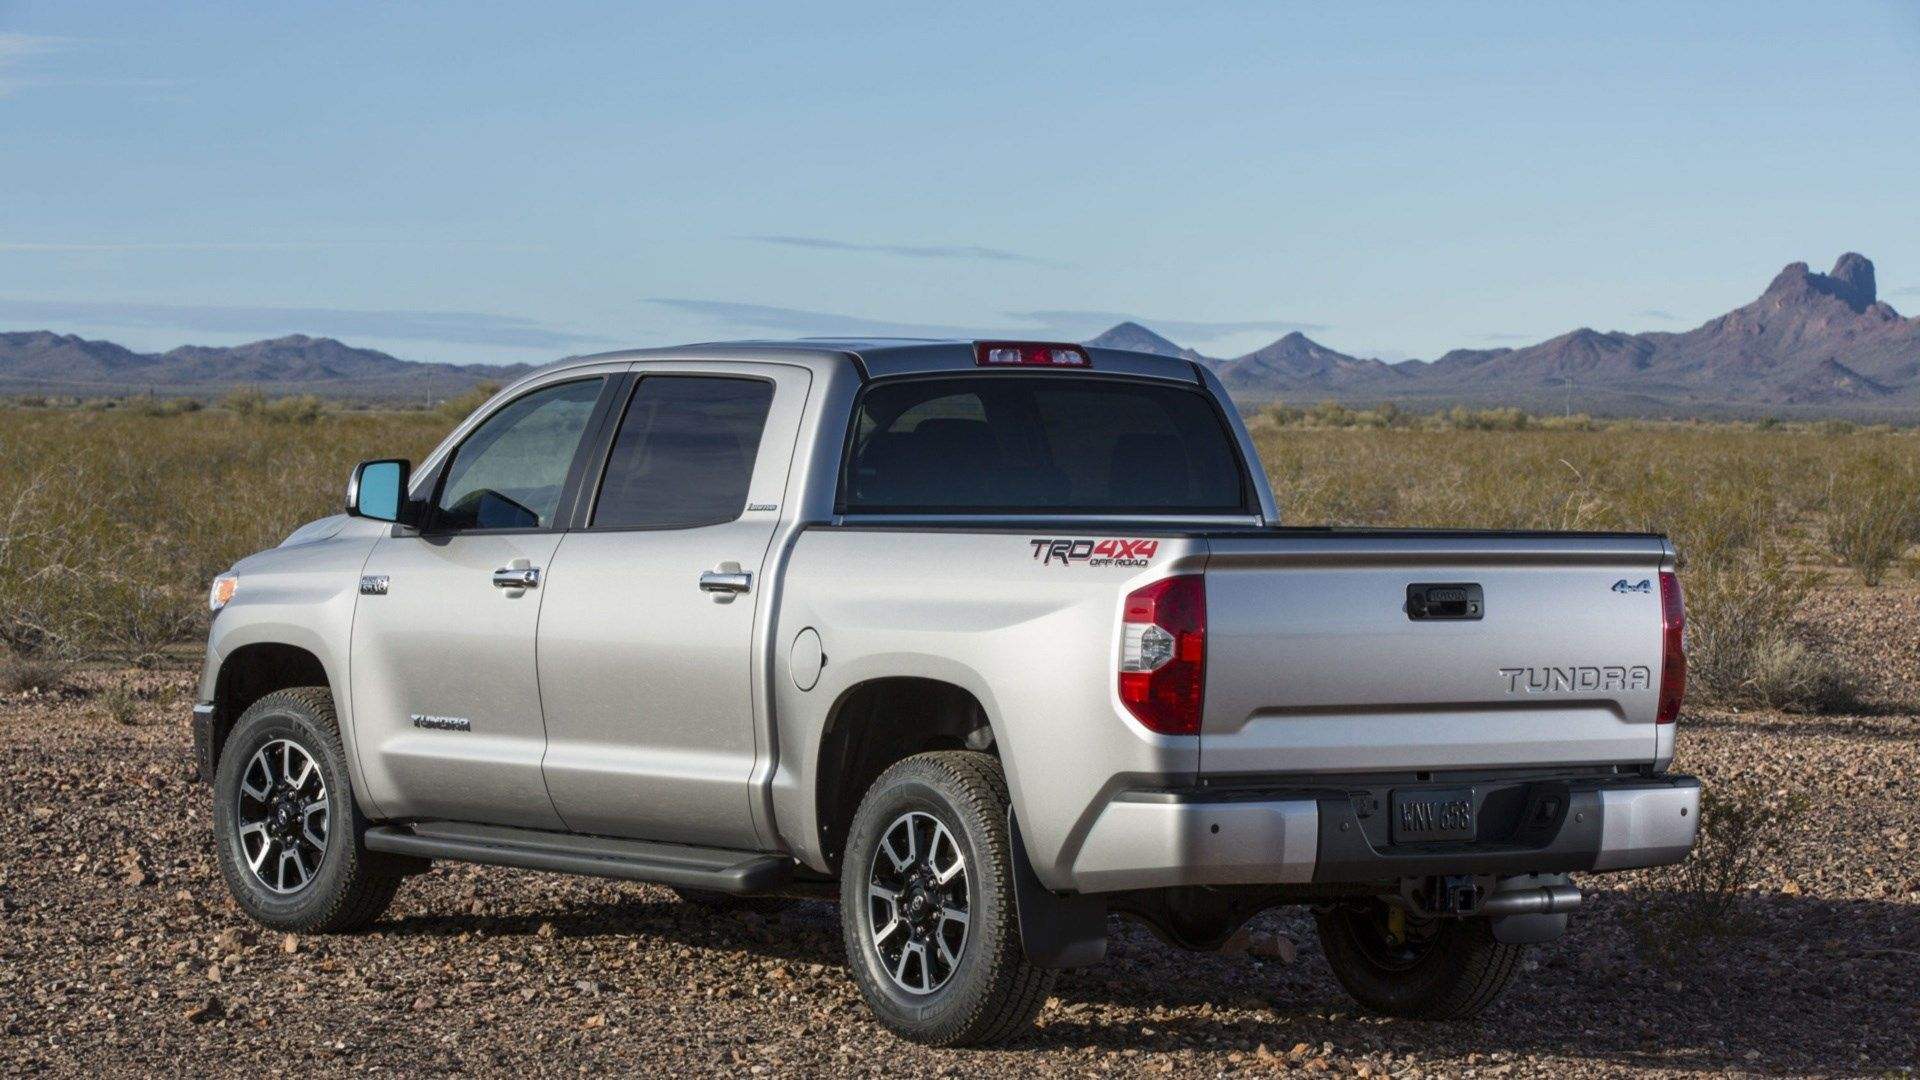 widescreen hd toyota tundra by Butler Brook (20170324